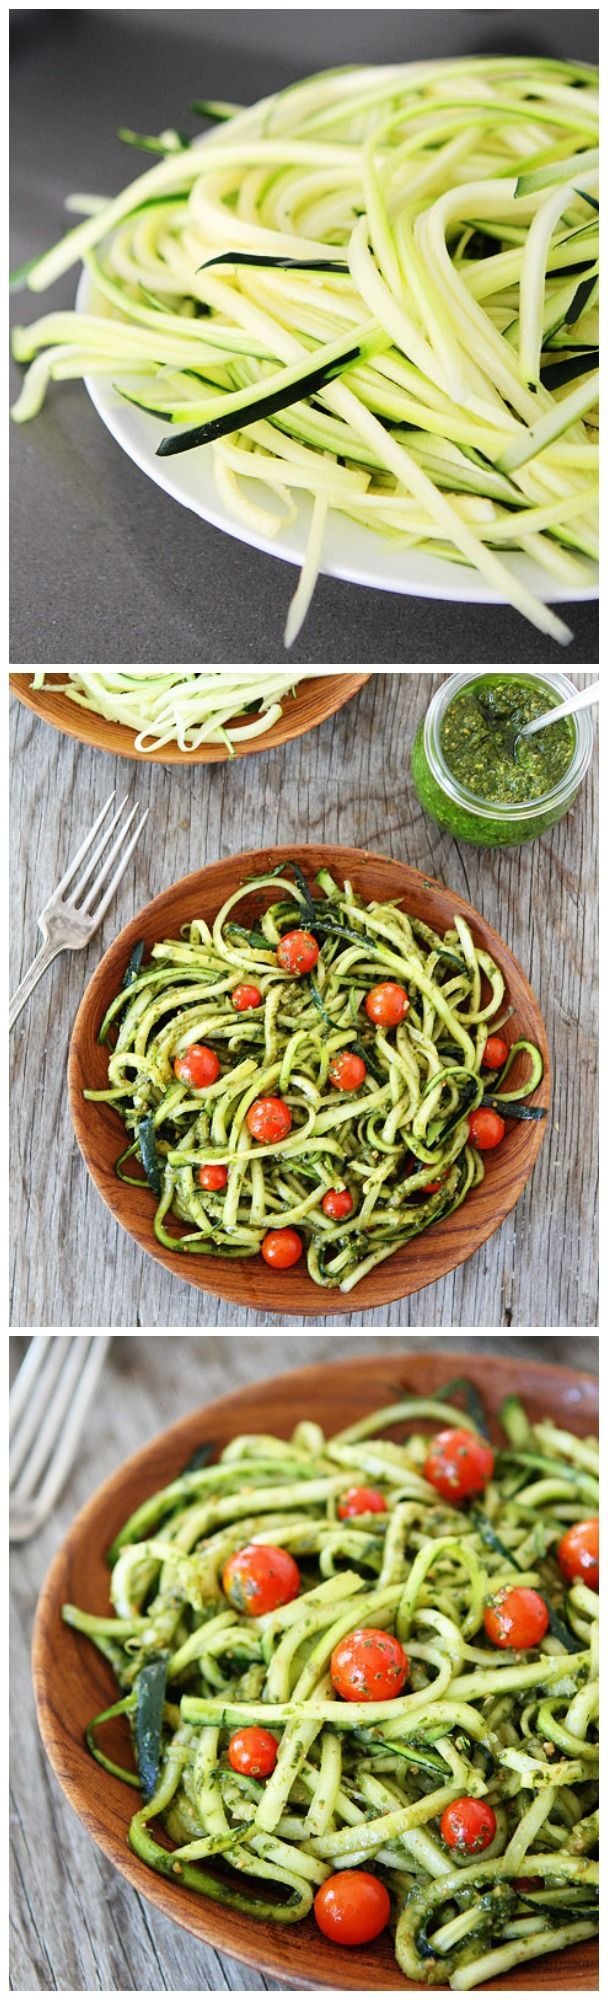 Easy Zucchini Noodles with Pesto.